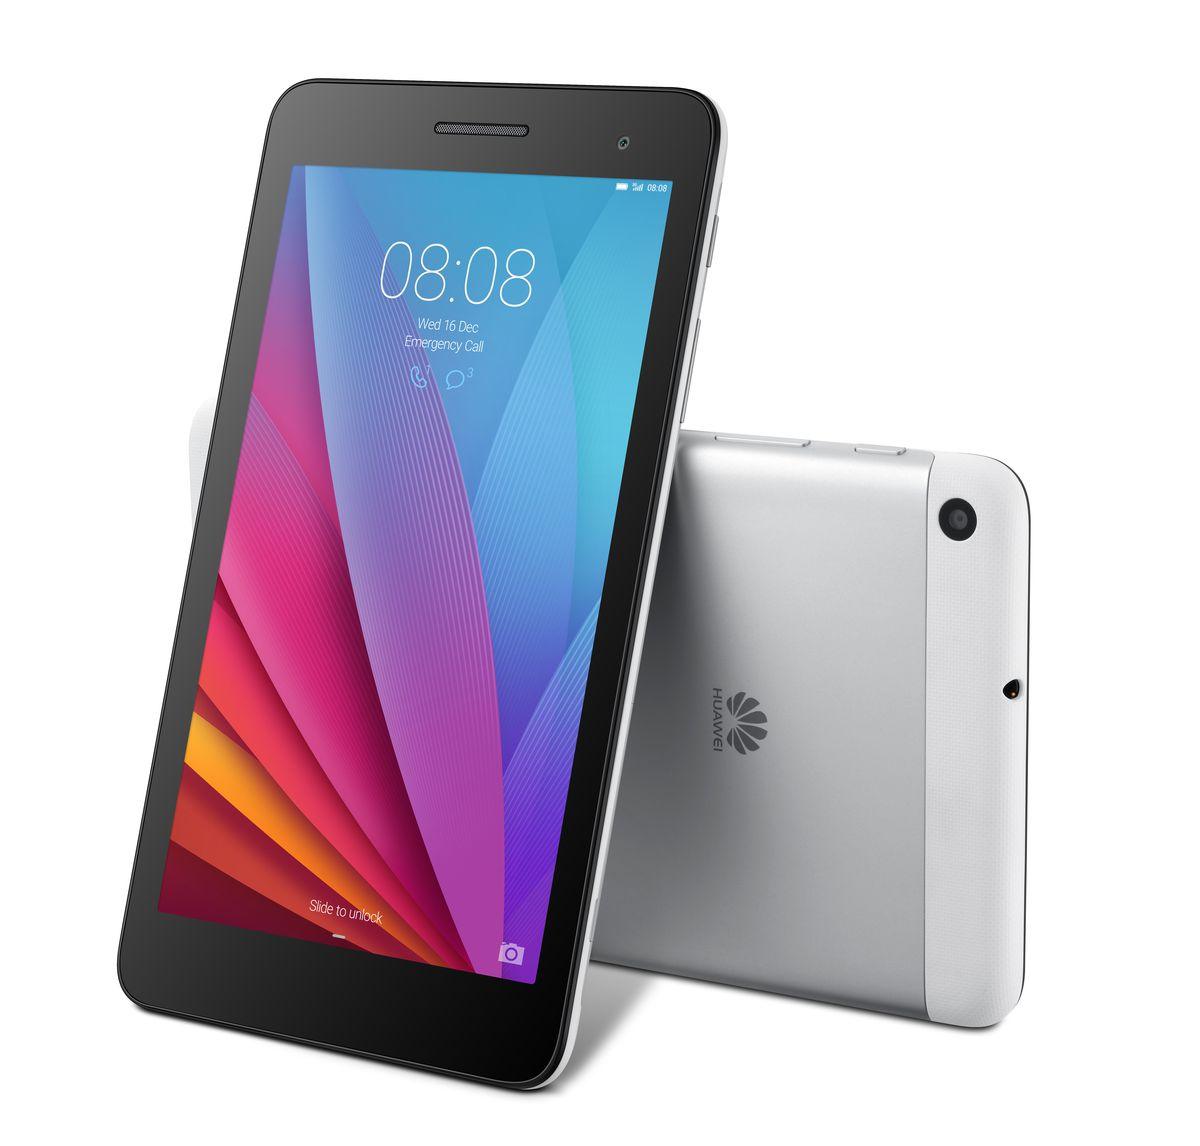 huawei 8 inch tablet. huawei mediapad t1 7\u0027\u0027 8gb tablet. loading zoom 8 inch tablet t